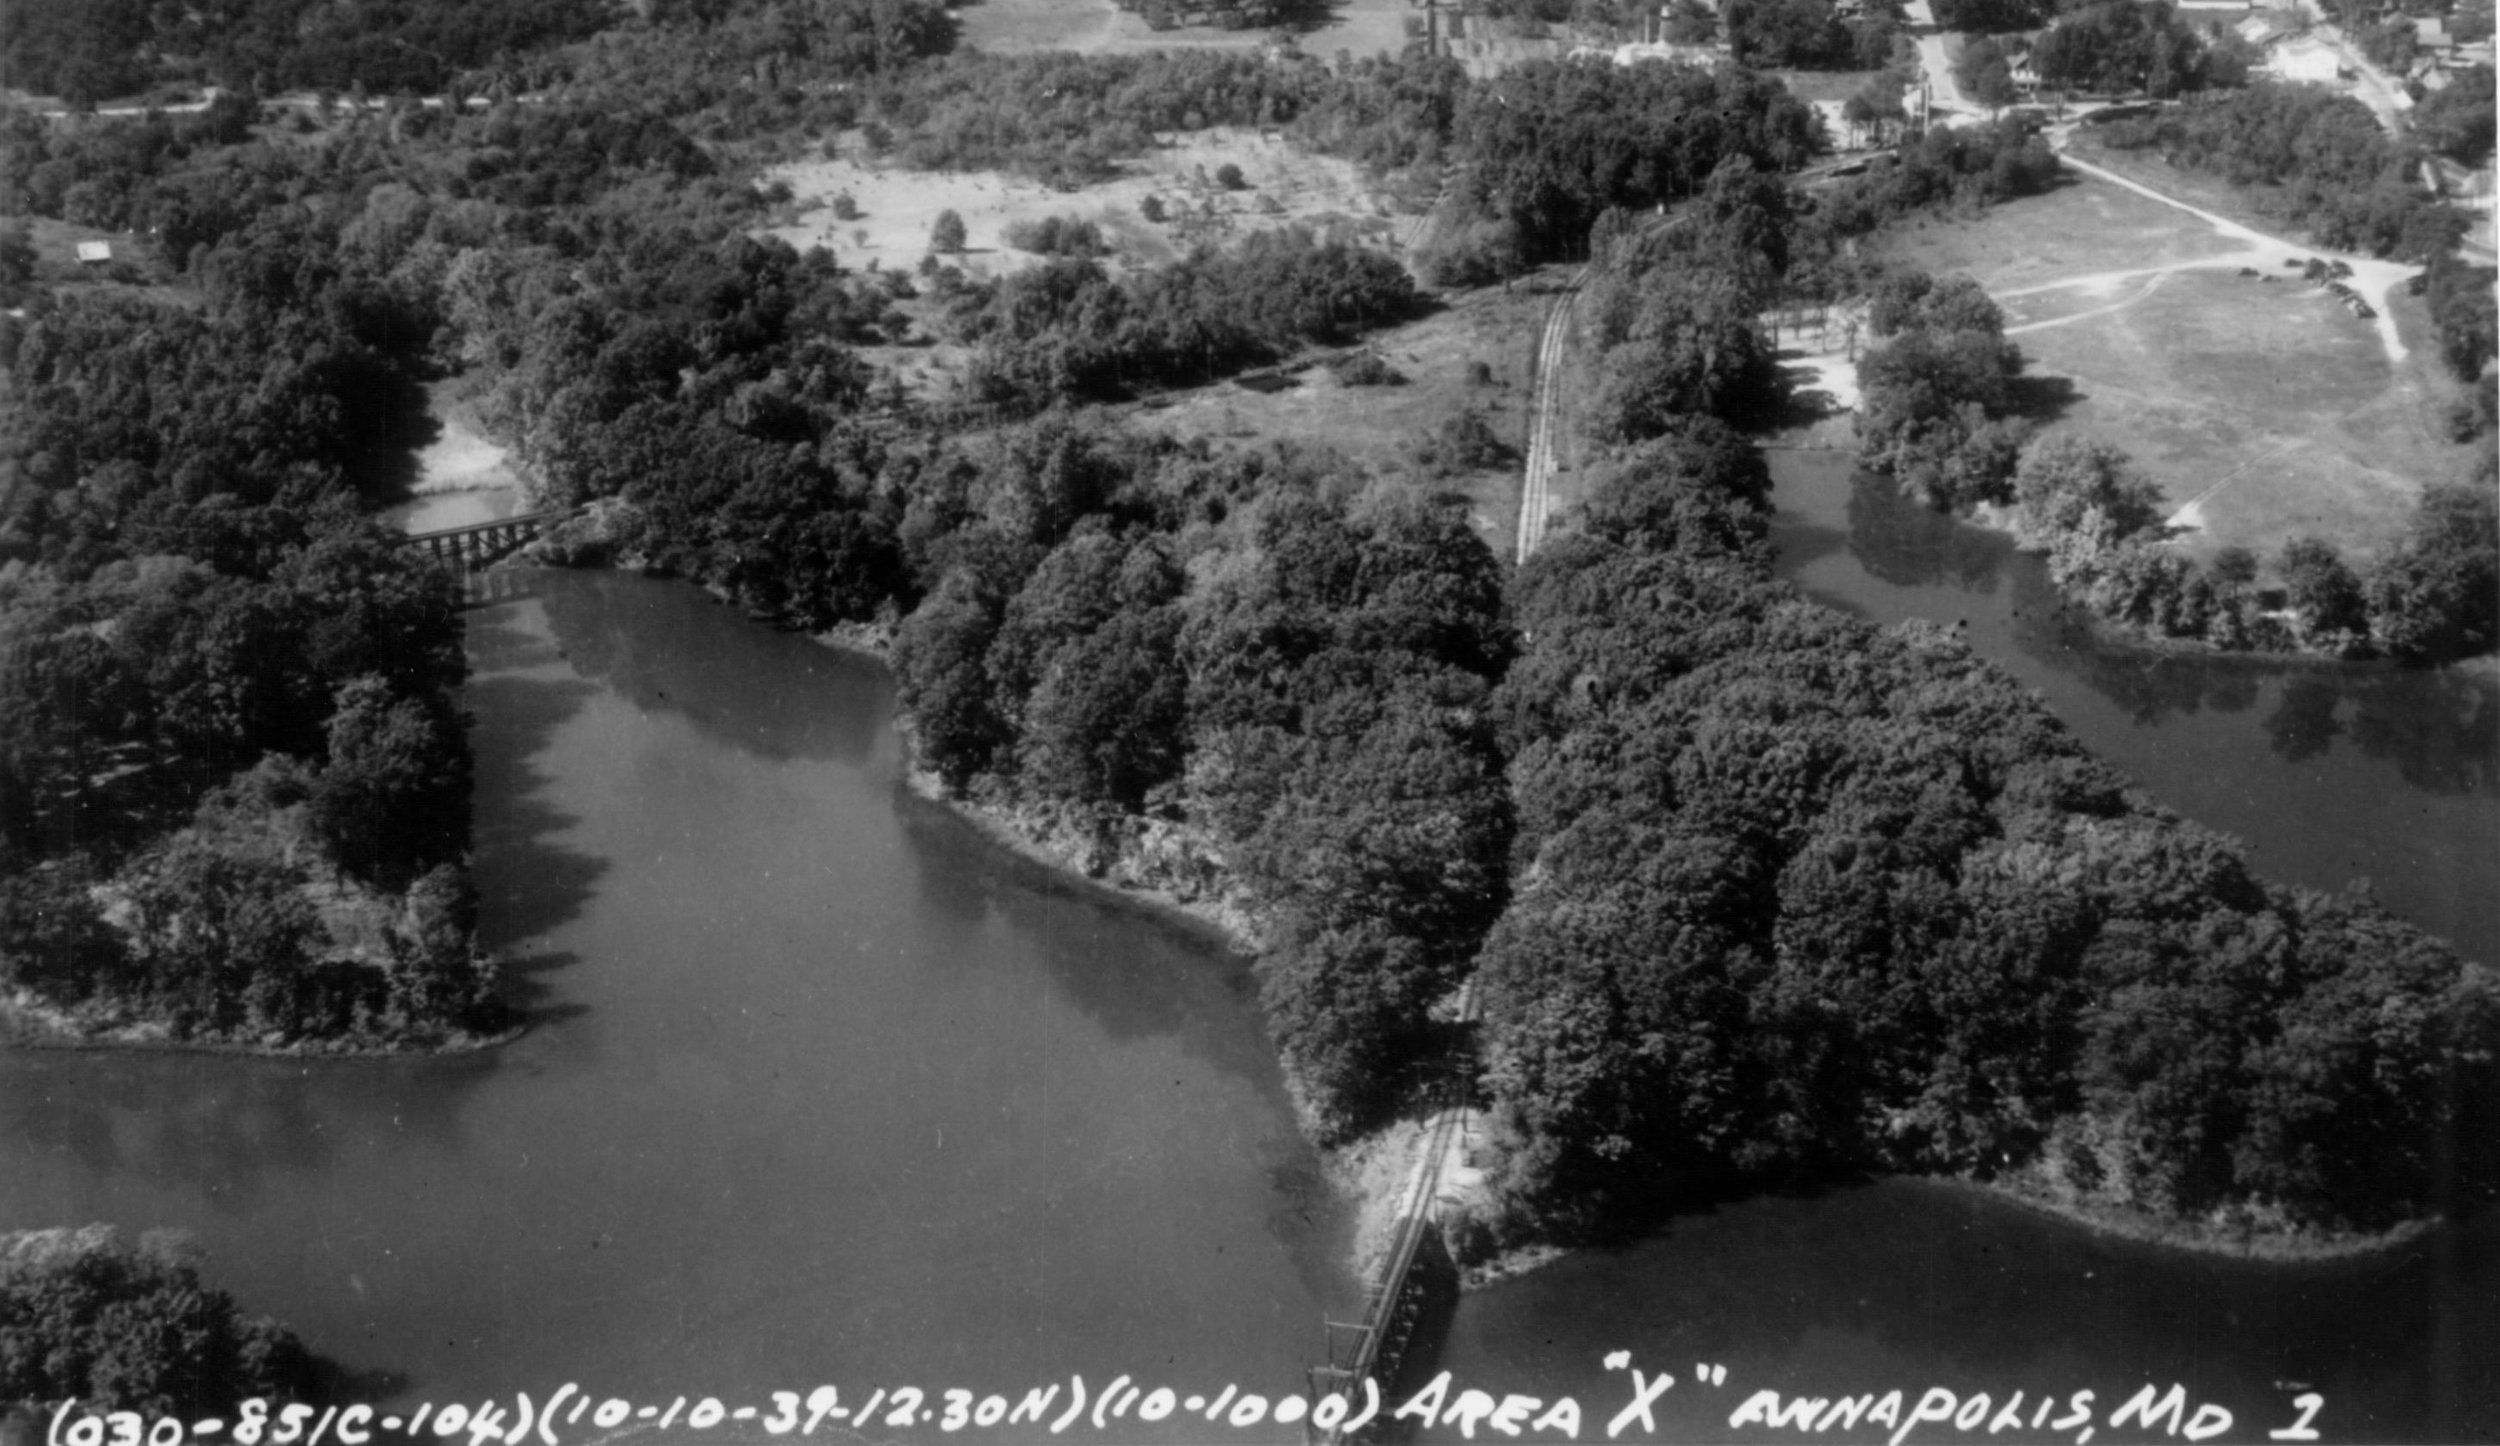 Baltimore & Annapolis Railroad Bridge crossing College Creek can be seen in the bottom of the picture. Annapolis, Maryland Date: October 10, 1939. Source: Maryland State Archives.